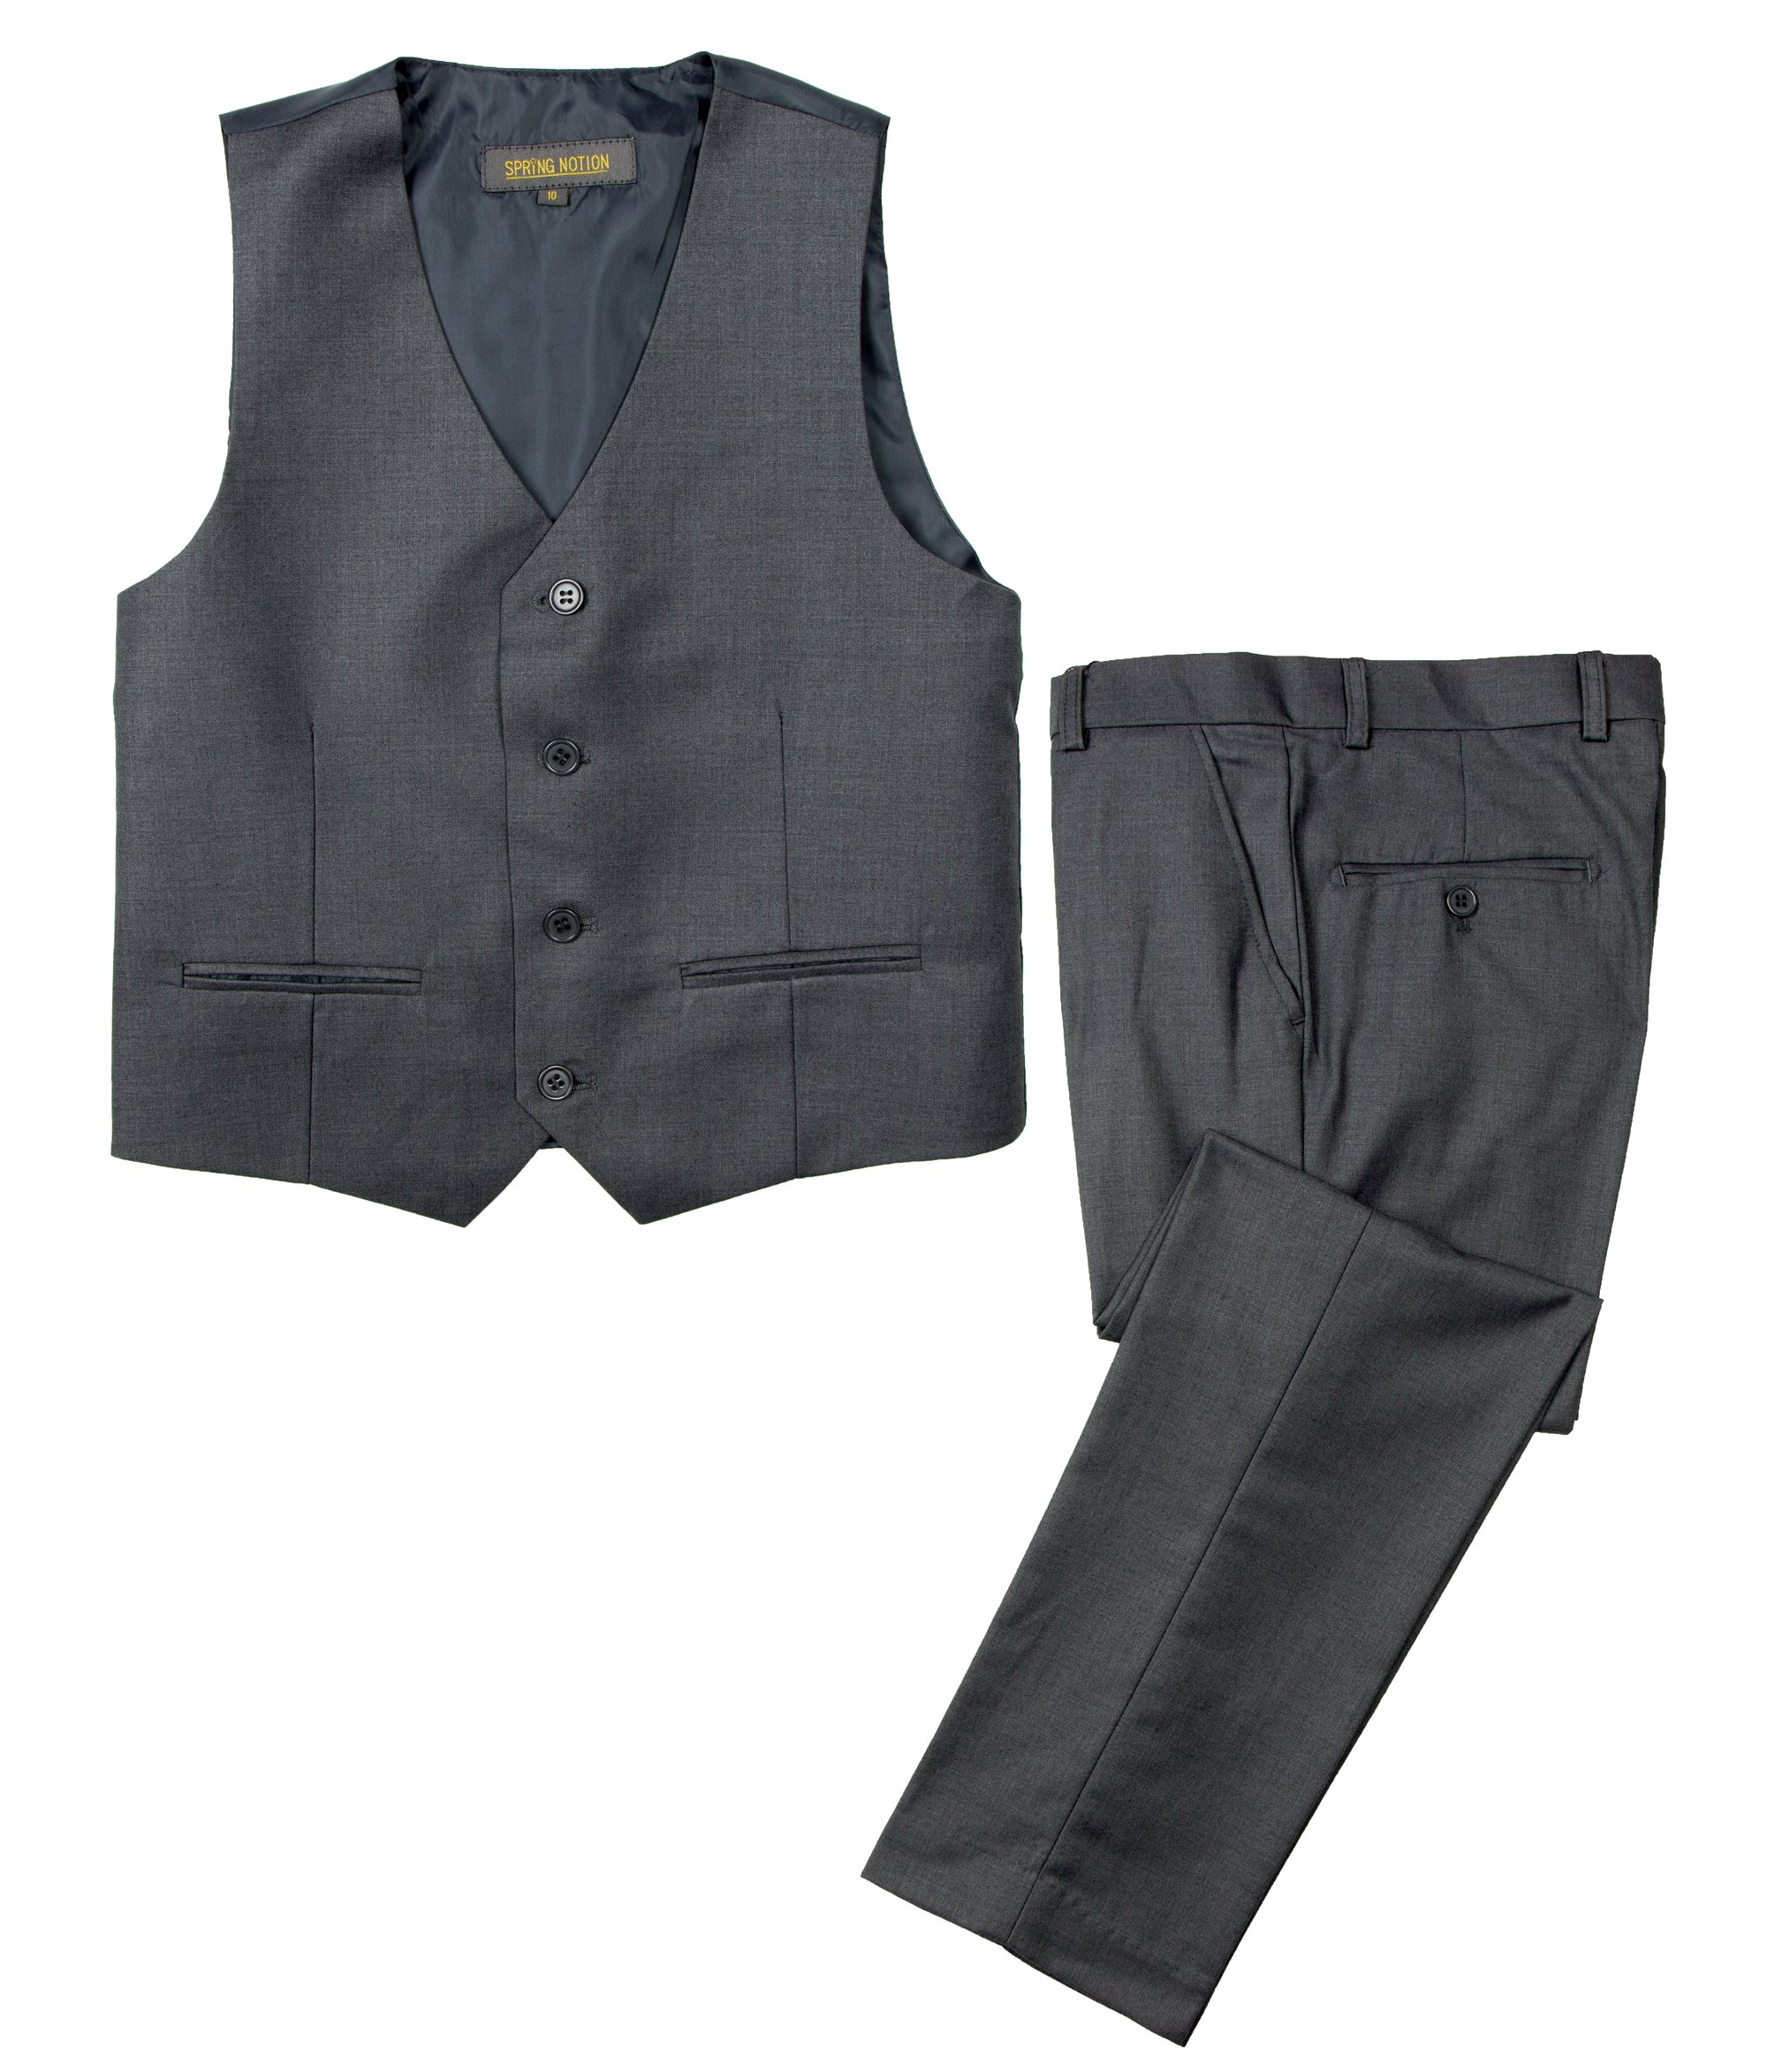 Spring Notion Big Boys' Two Button Suit Charcoal-B 14 Vest and Pants